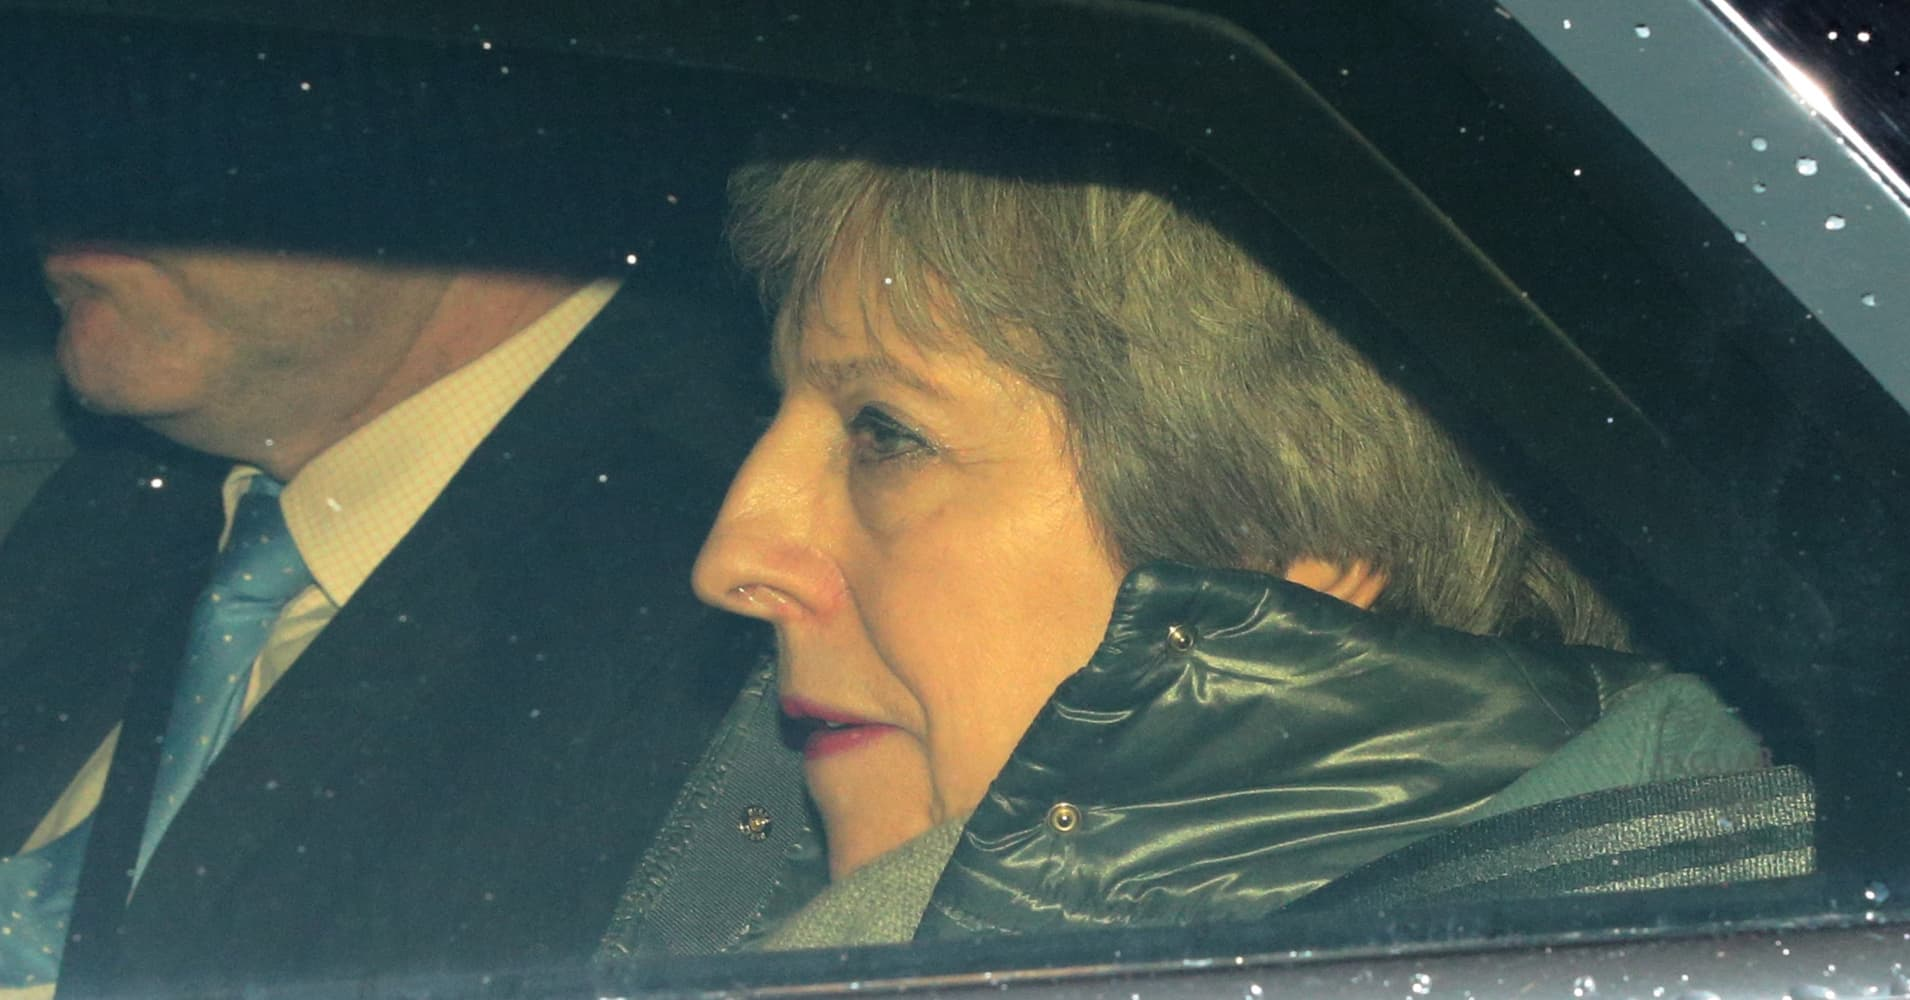 With rumors of a Brexit coup, Theresa May's leadership looks 'extremely fragile'